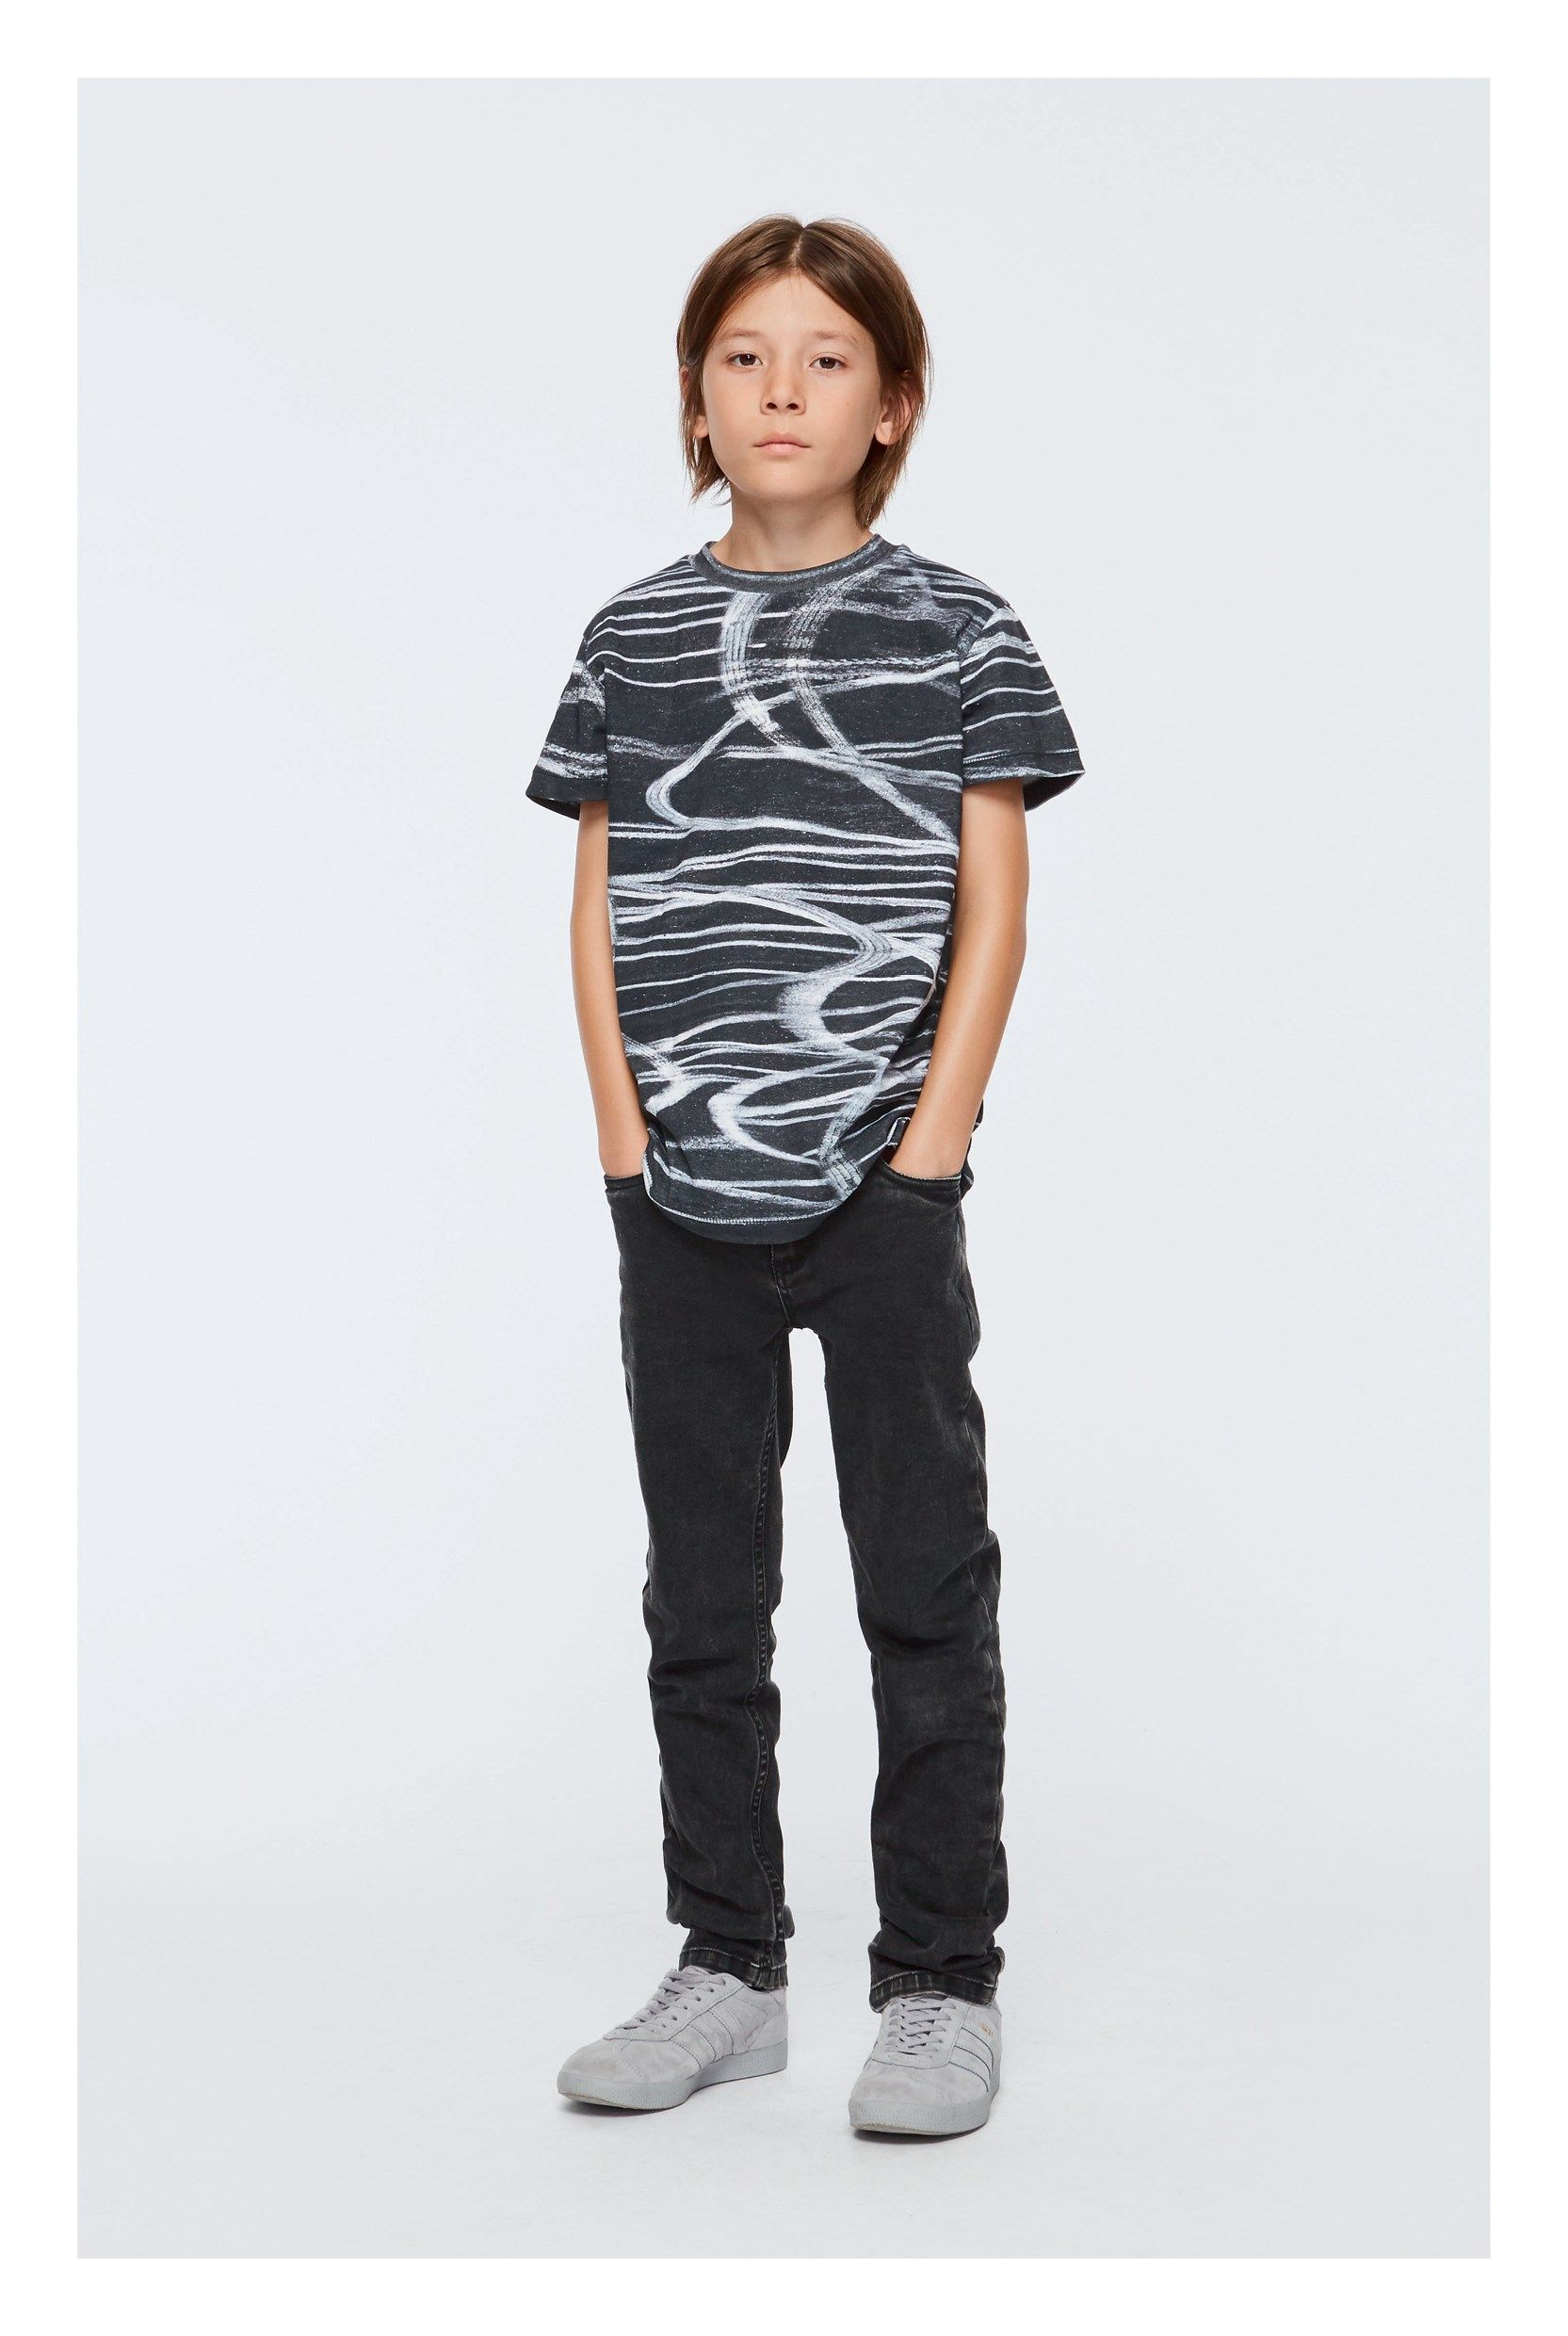 See this cool clothing from Molo kids molokids Kids